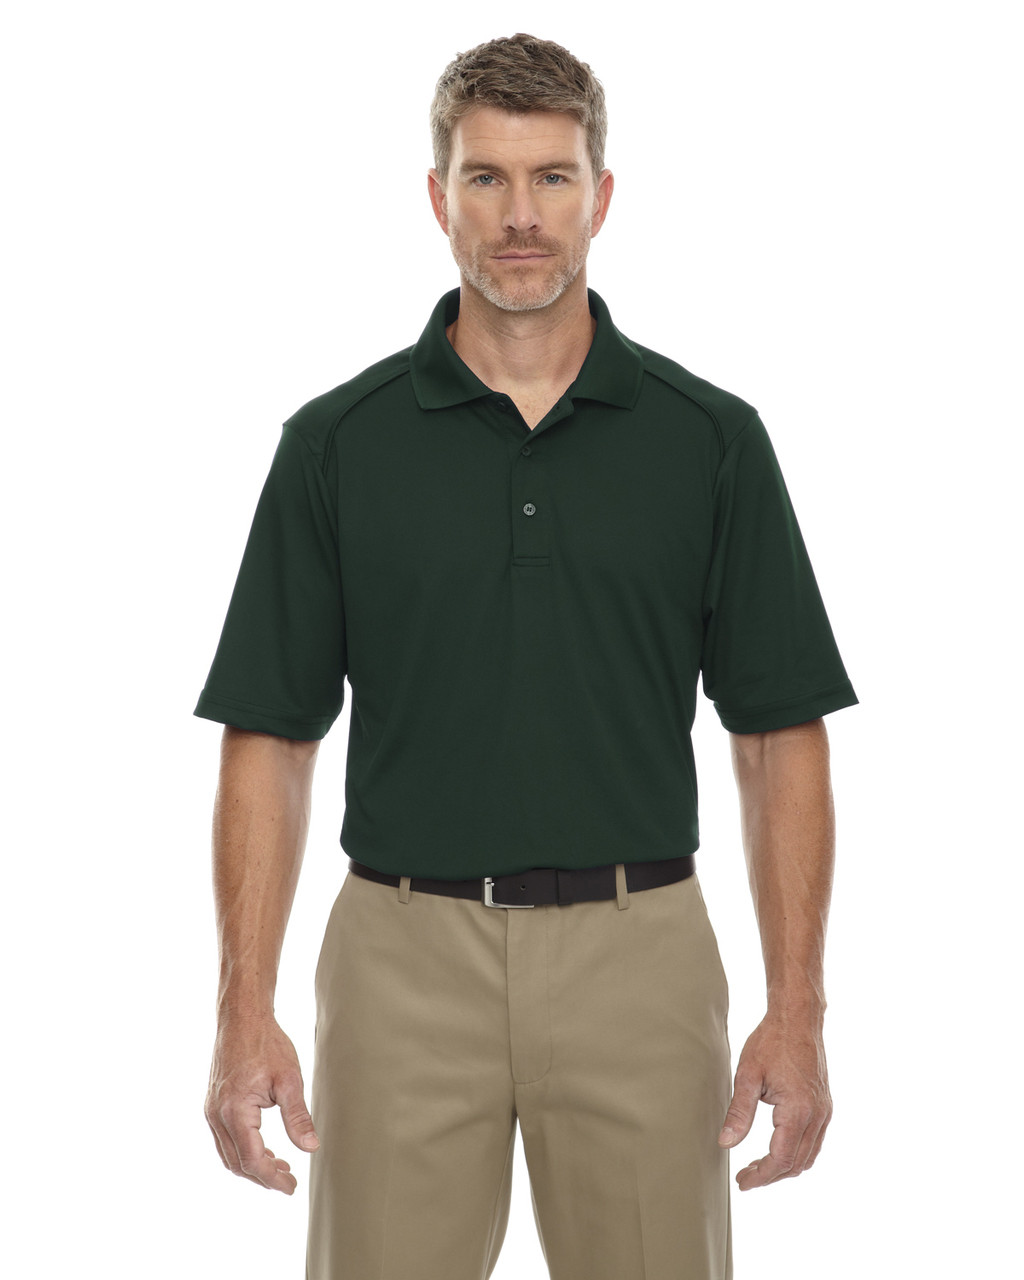 Forest Green 85108 Ash City - Extreme Eperformance Men's Shield Short-Sleeve Polo Shirt